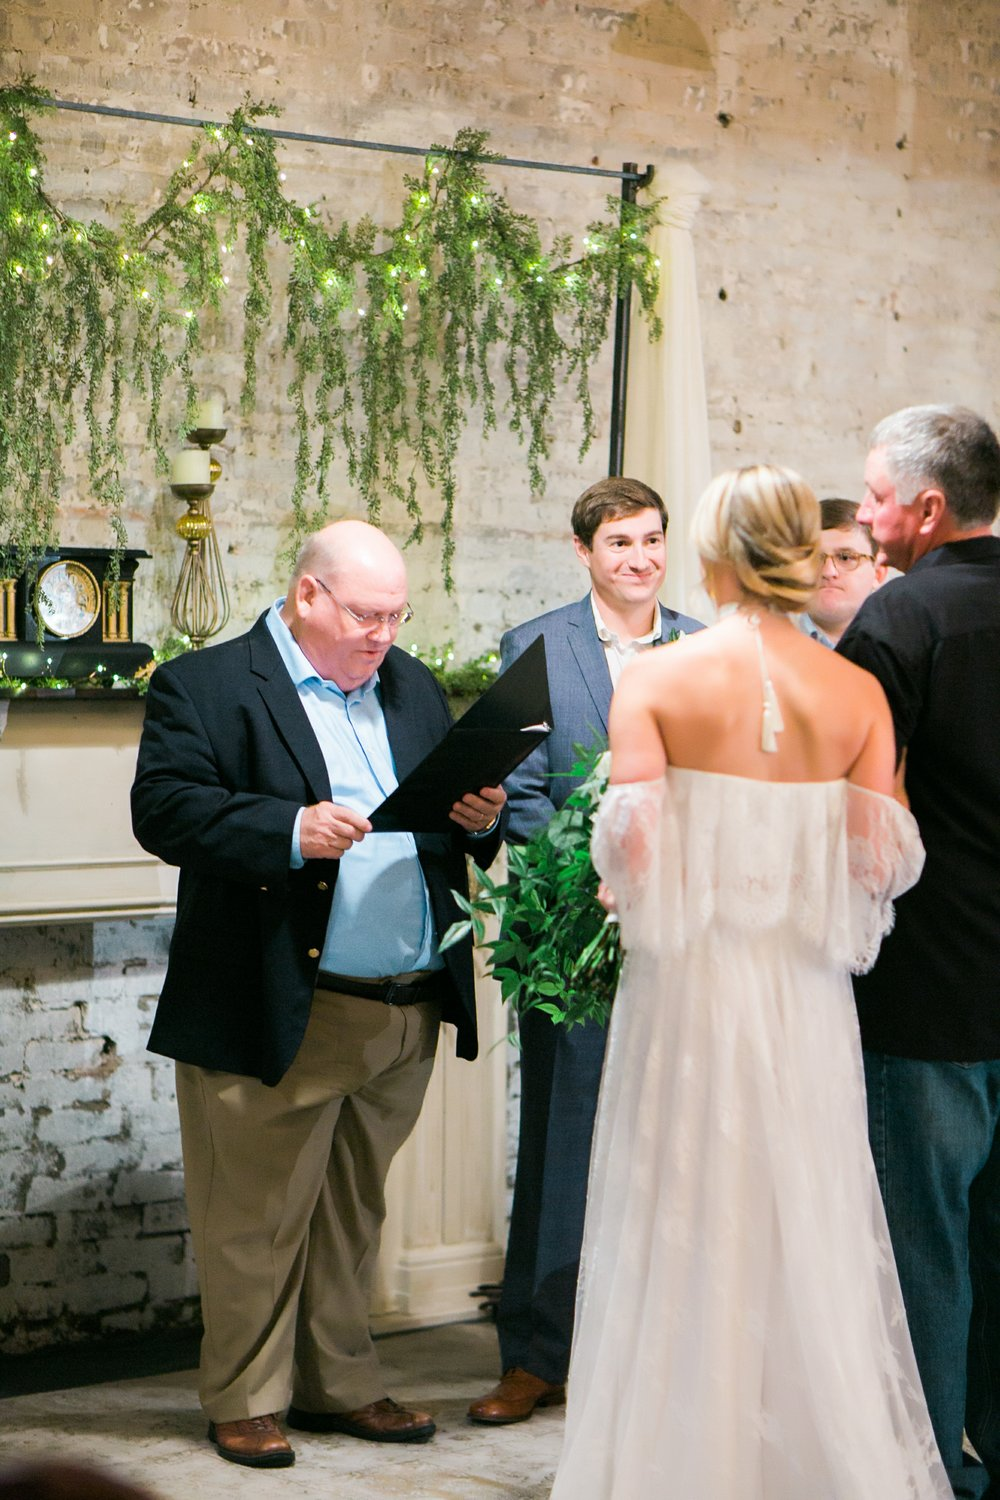 Magan-Landon-Surprise-wedding-at-southern-jeweled-warehouse-wichita-falls-texas-lauren-pinson-051.jpg